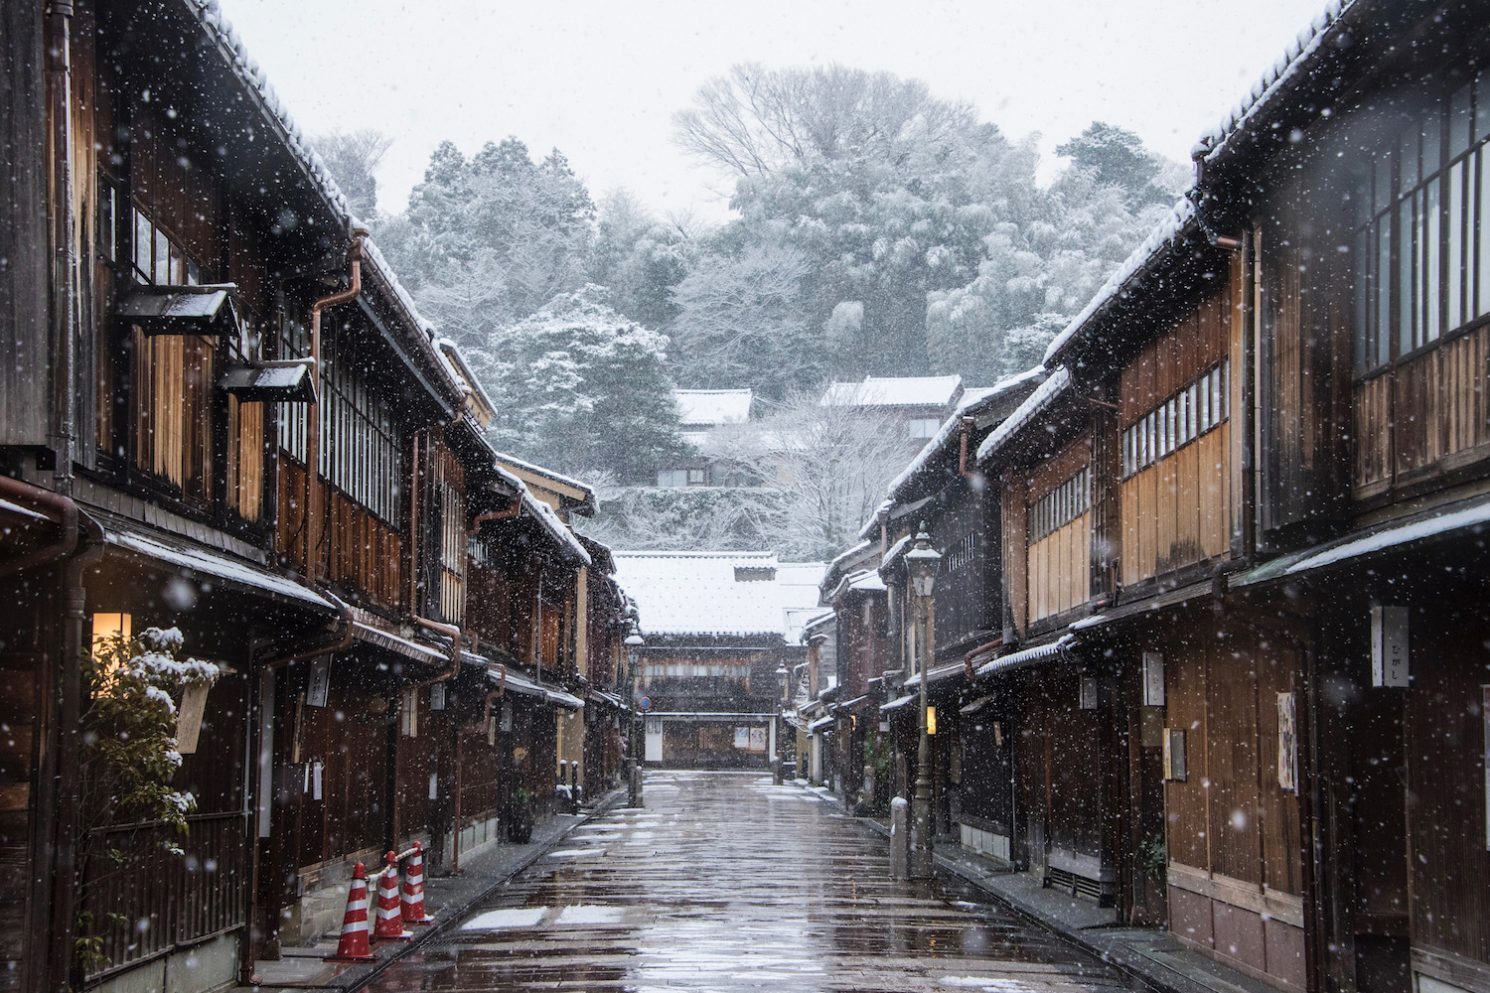 Japan's Most Underrated Cities